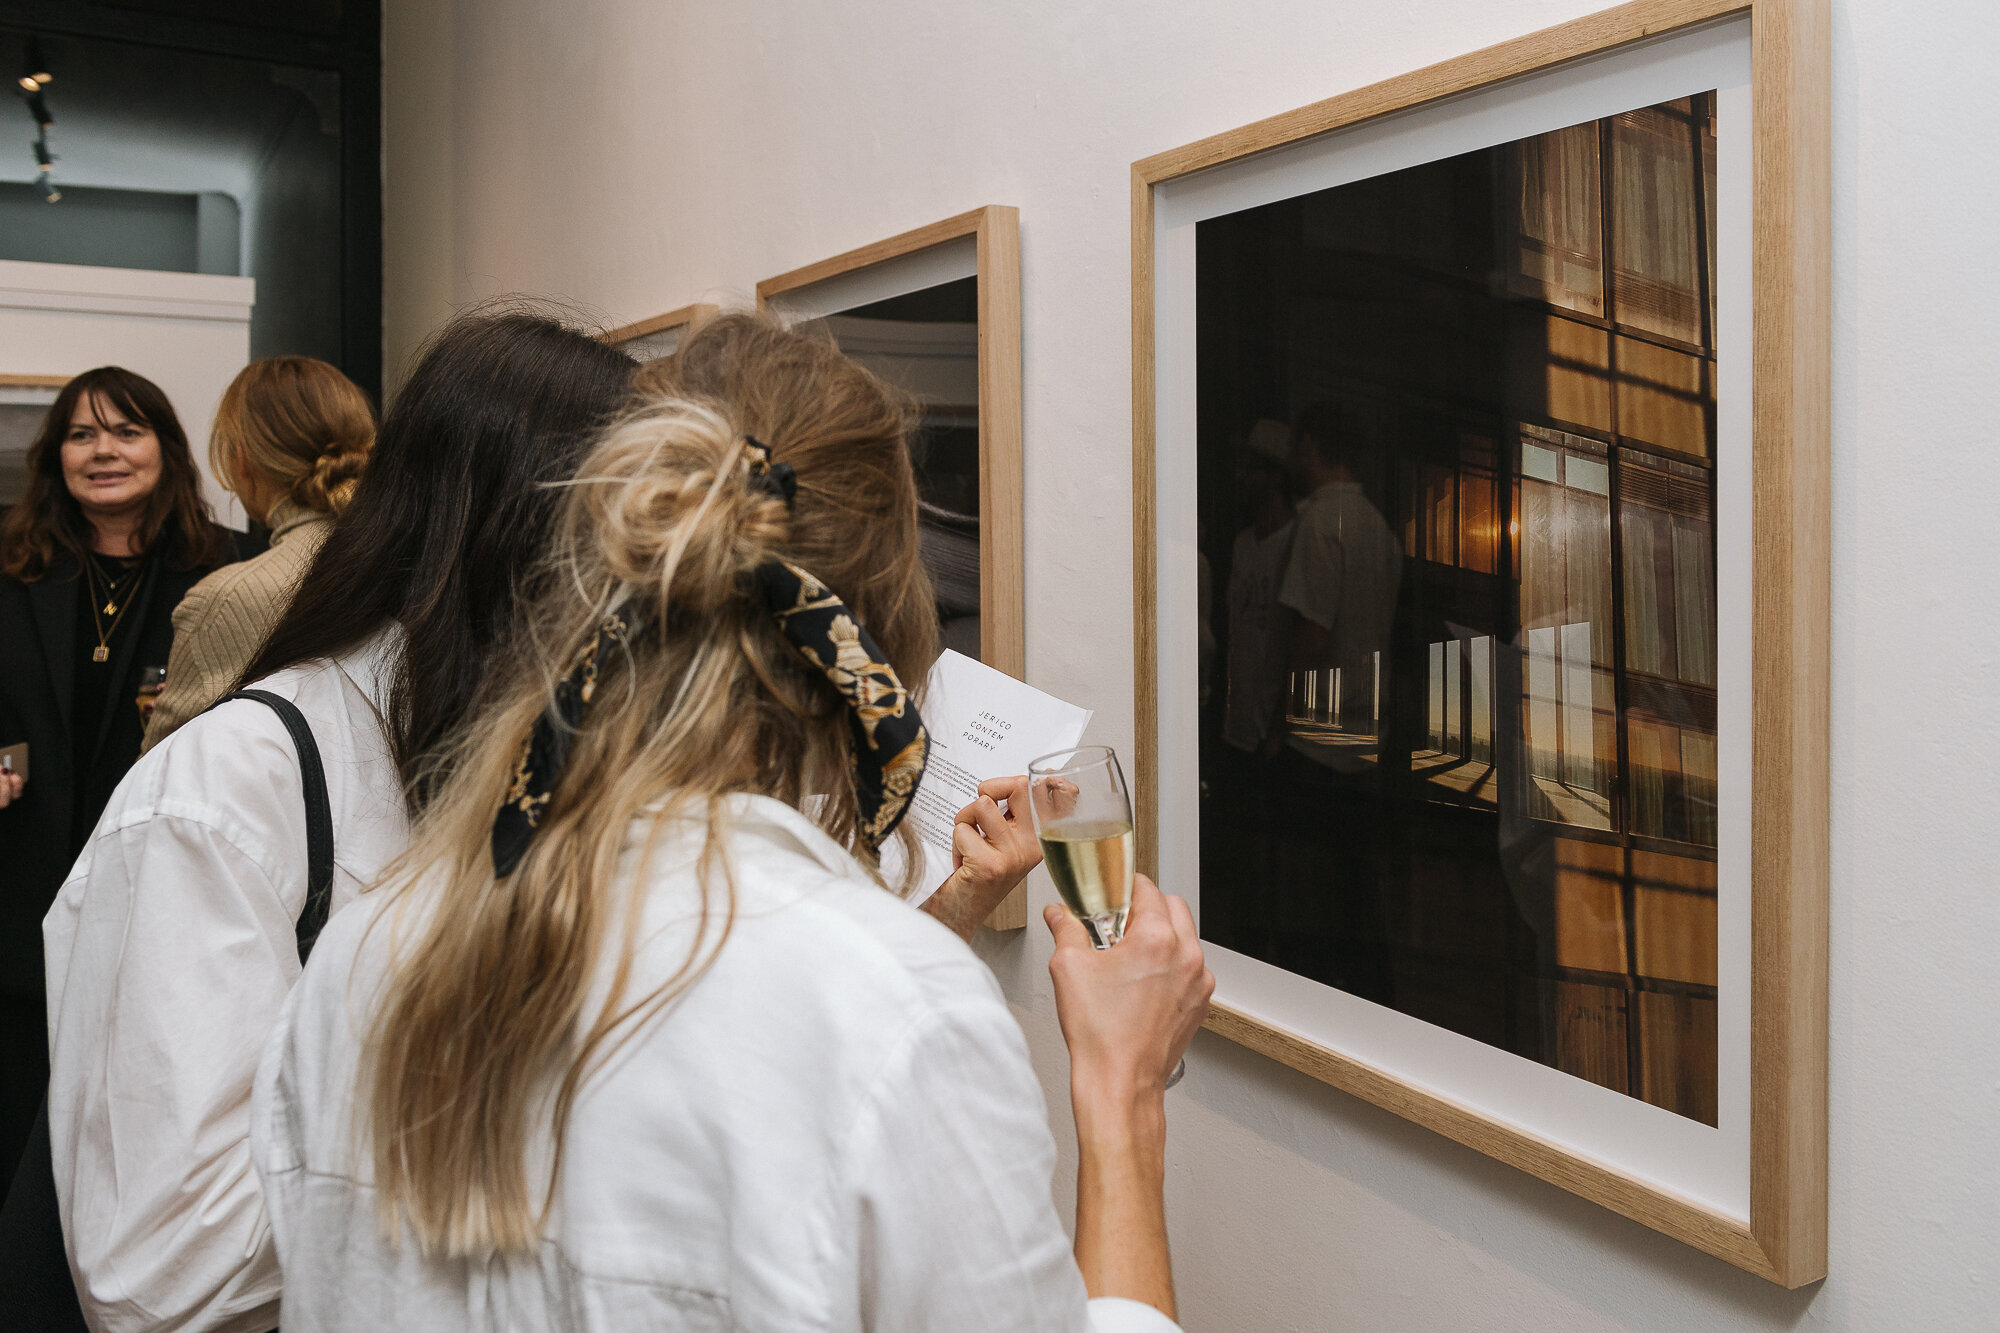 Sign Up - We have regular events here at the gallery from exhibition openings to artist talks. Sign up to our mailing list and make sure you never miss out.